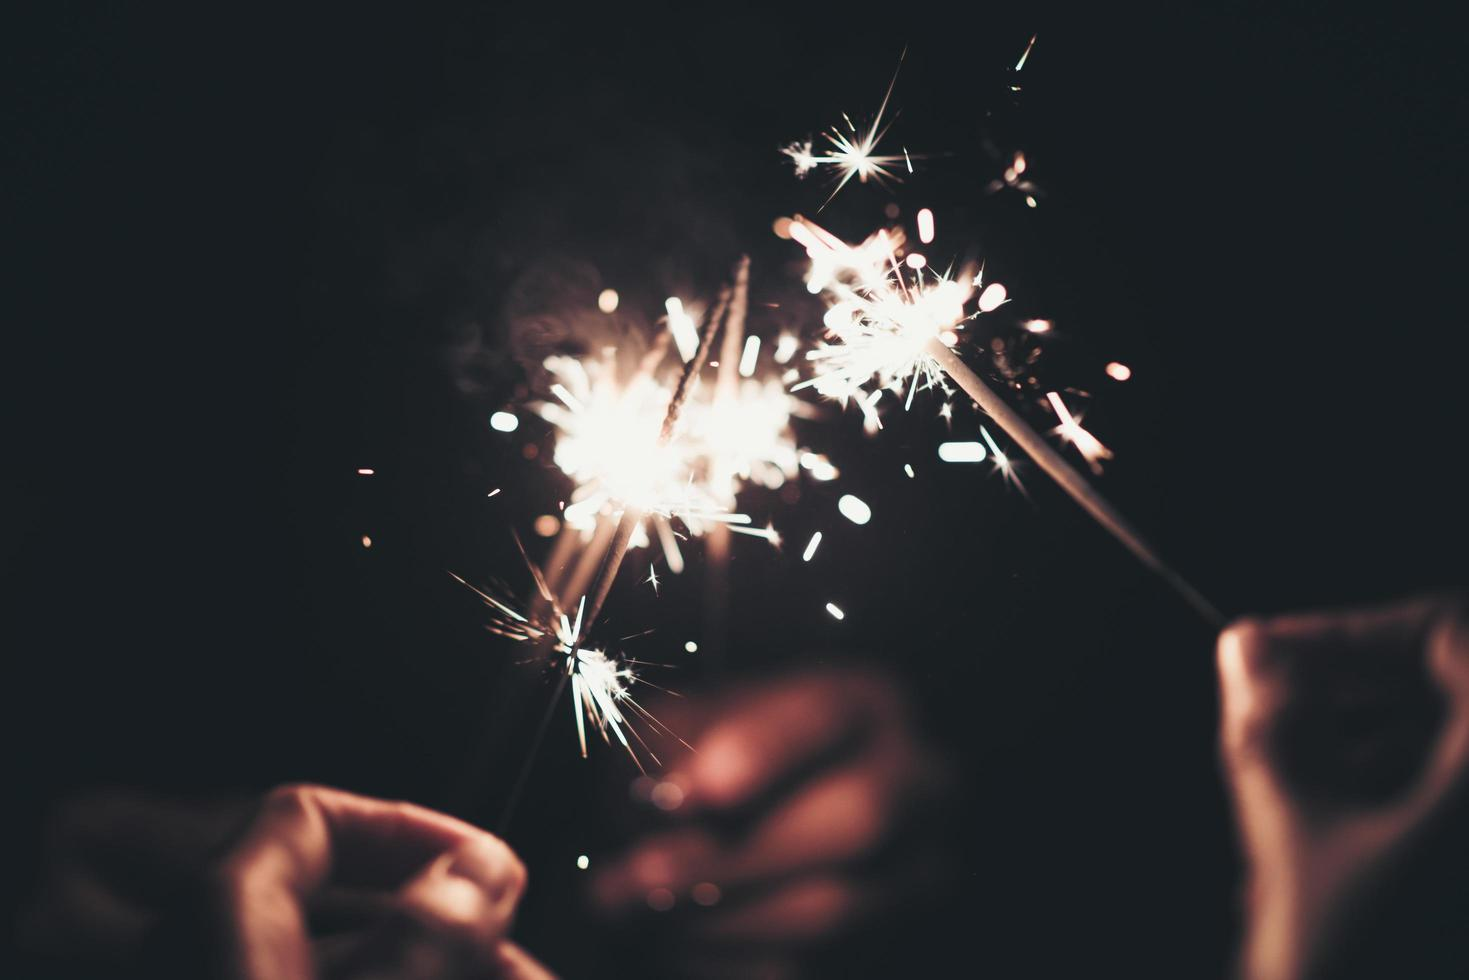 Group of people holding sparklers at night photo